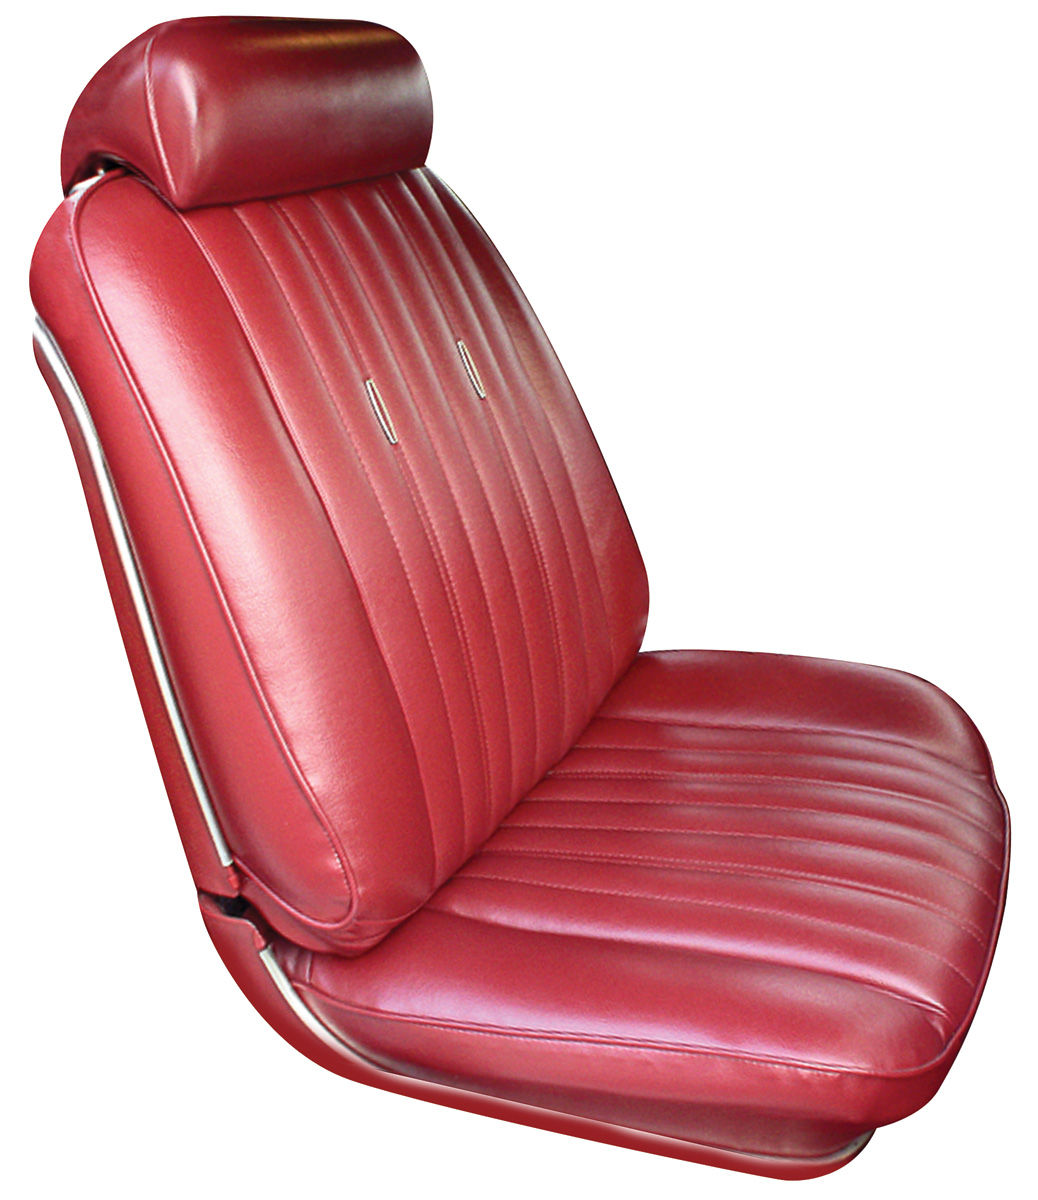 Photo of Seat Upholstery, 1969 Parisienne rear seat, convertible